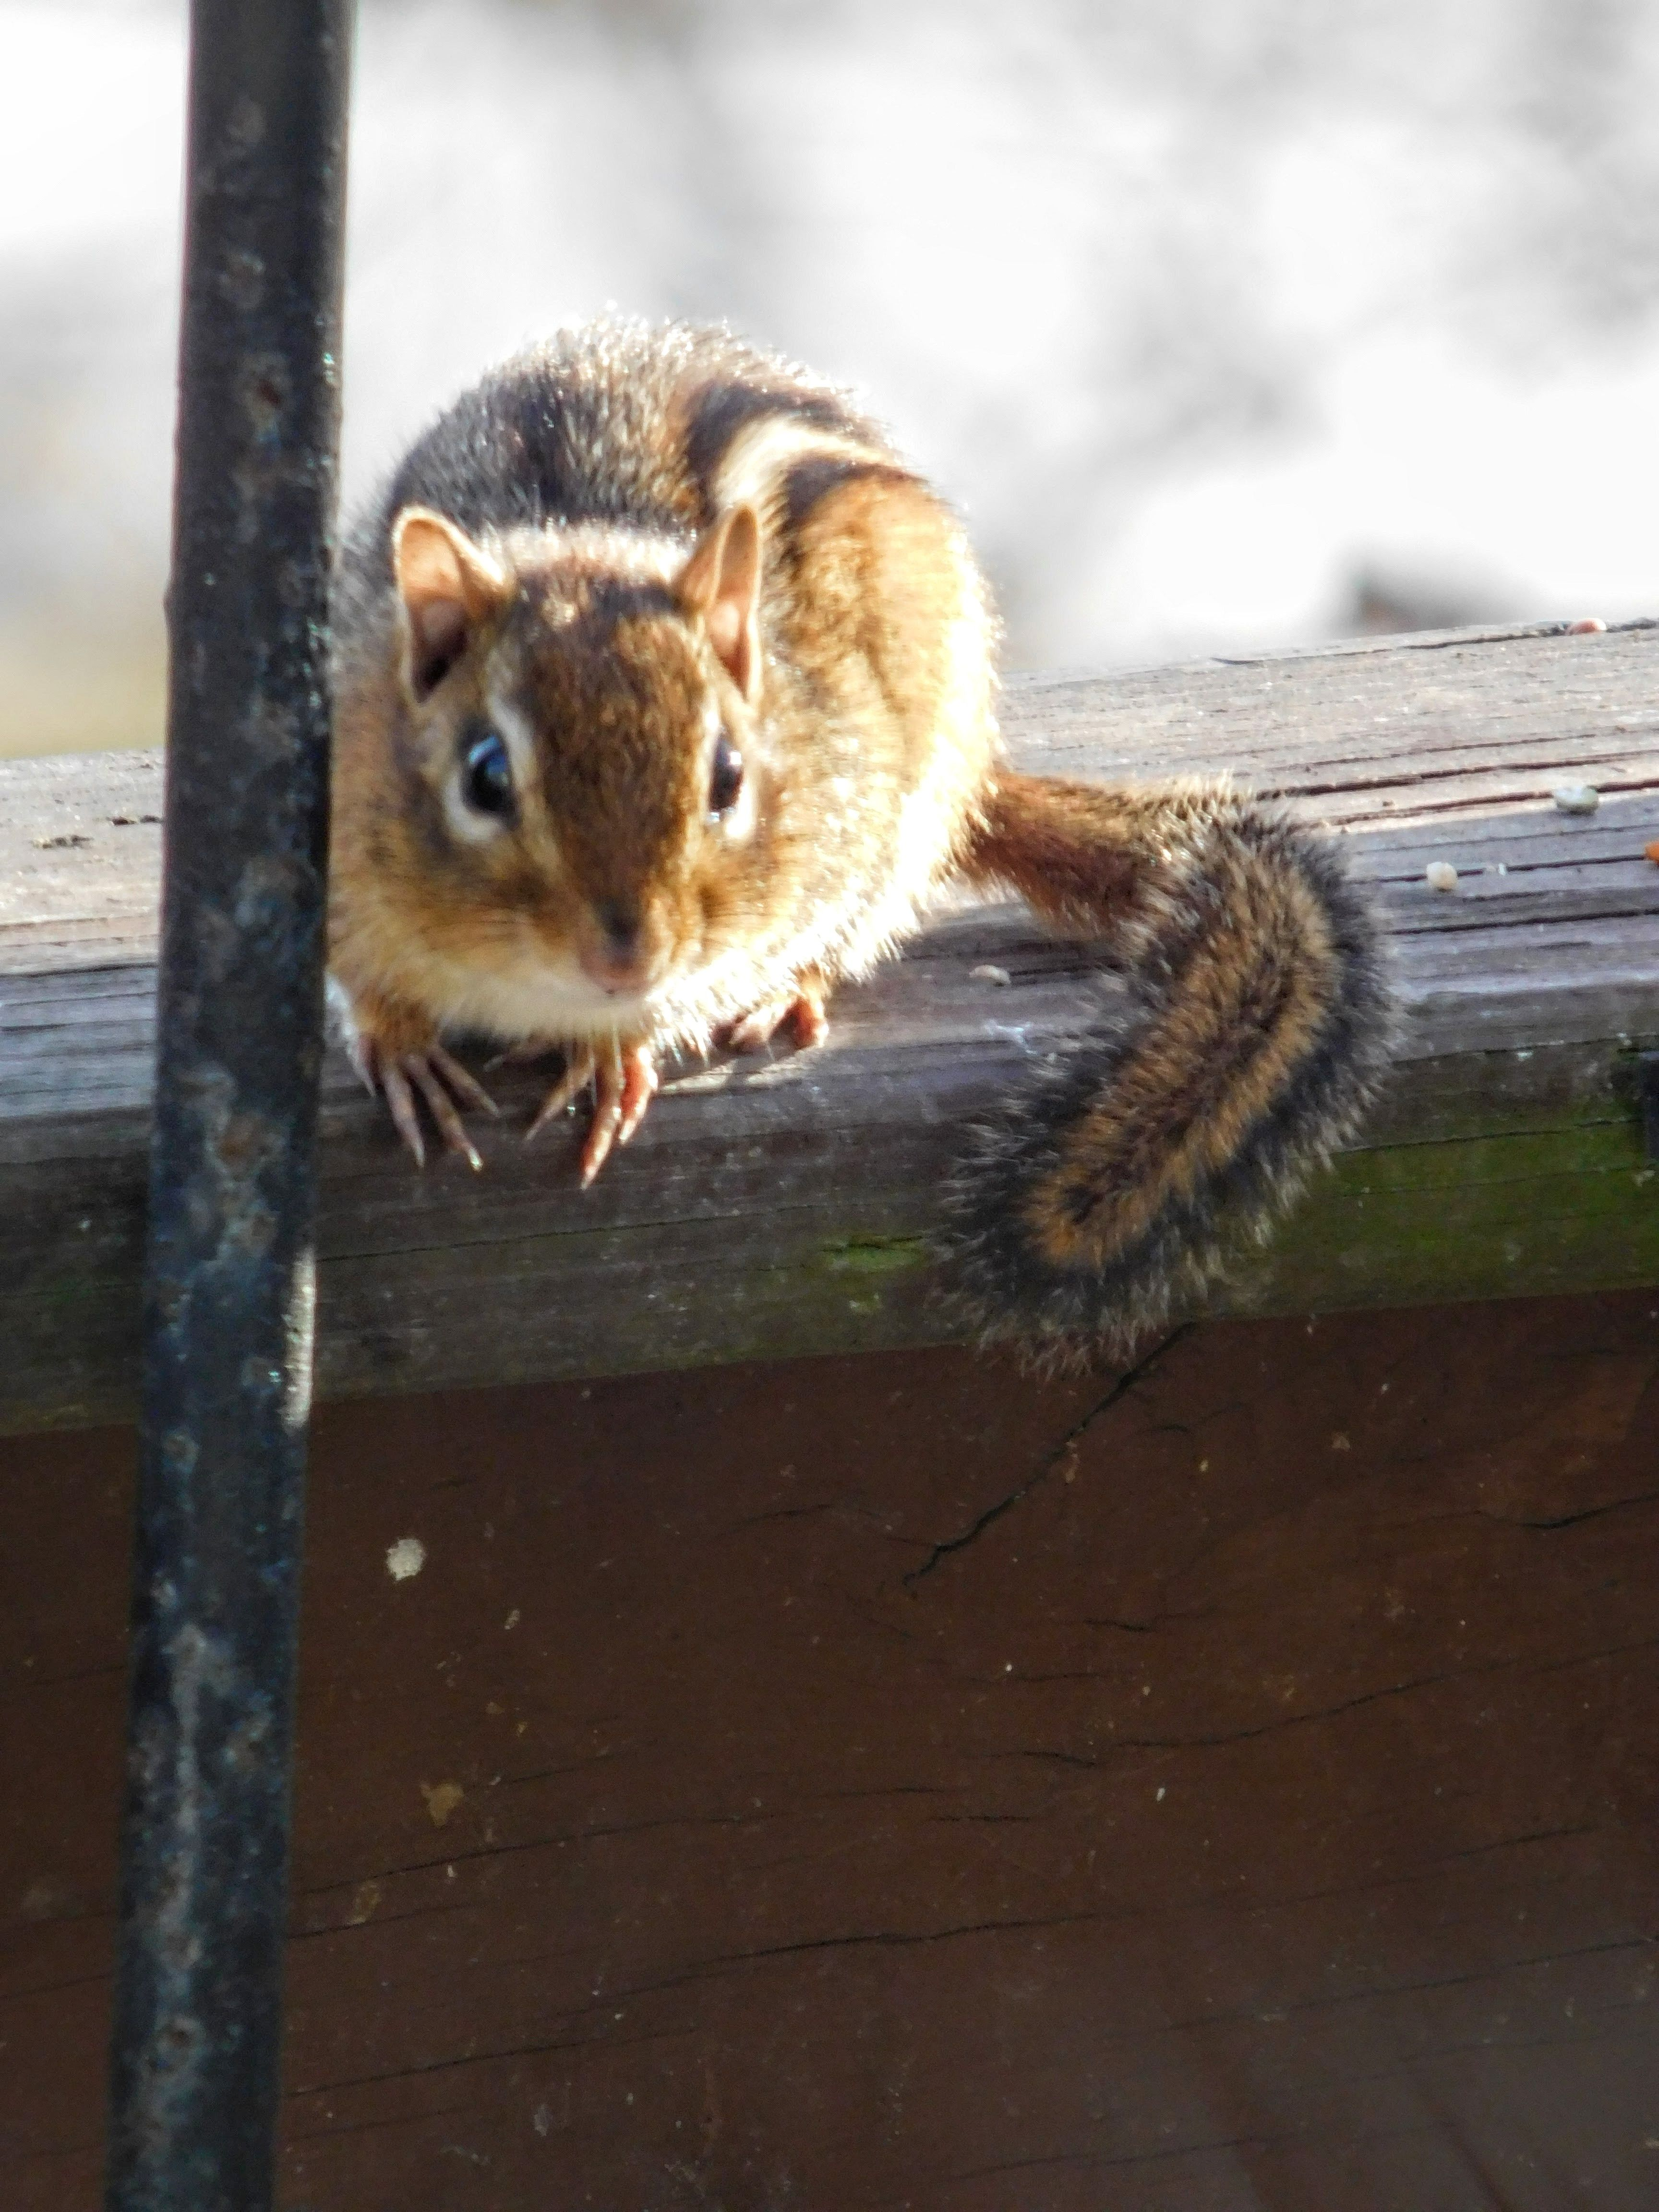 Chipmunk / I'd say he has stored a gal. of birdseed for